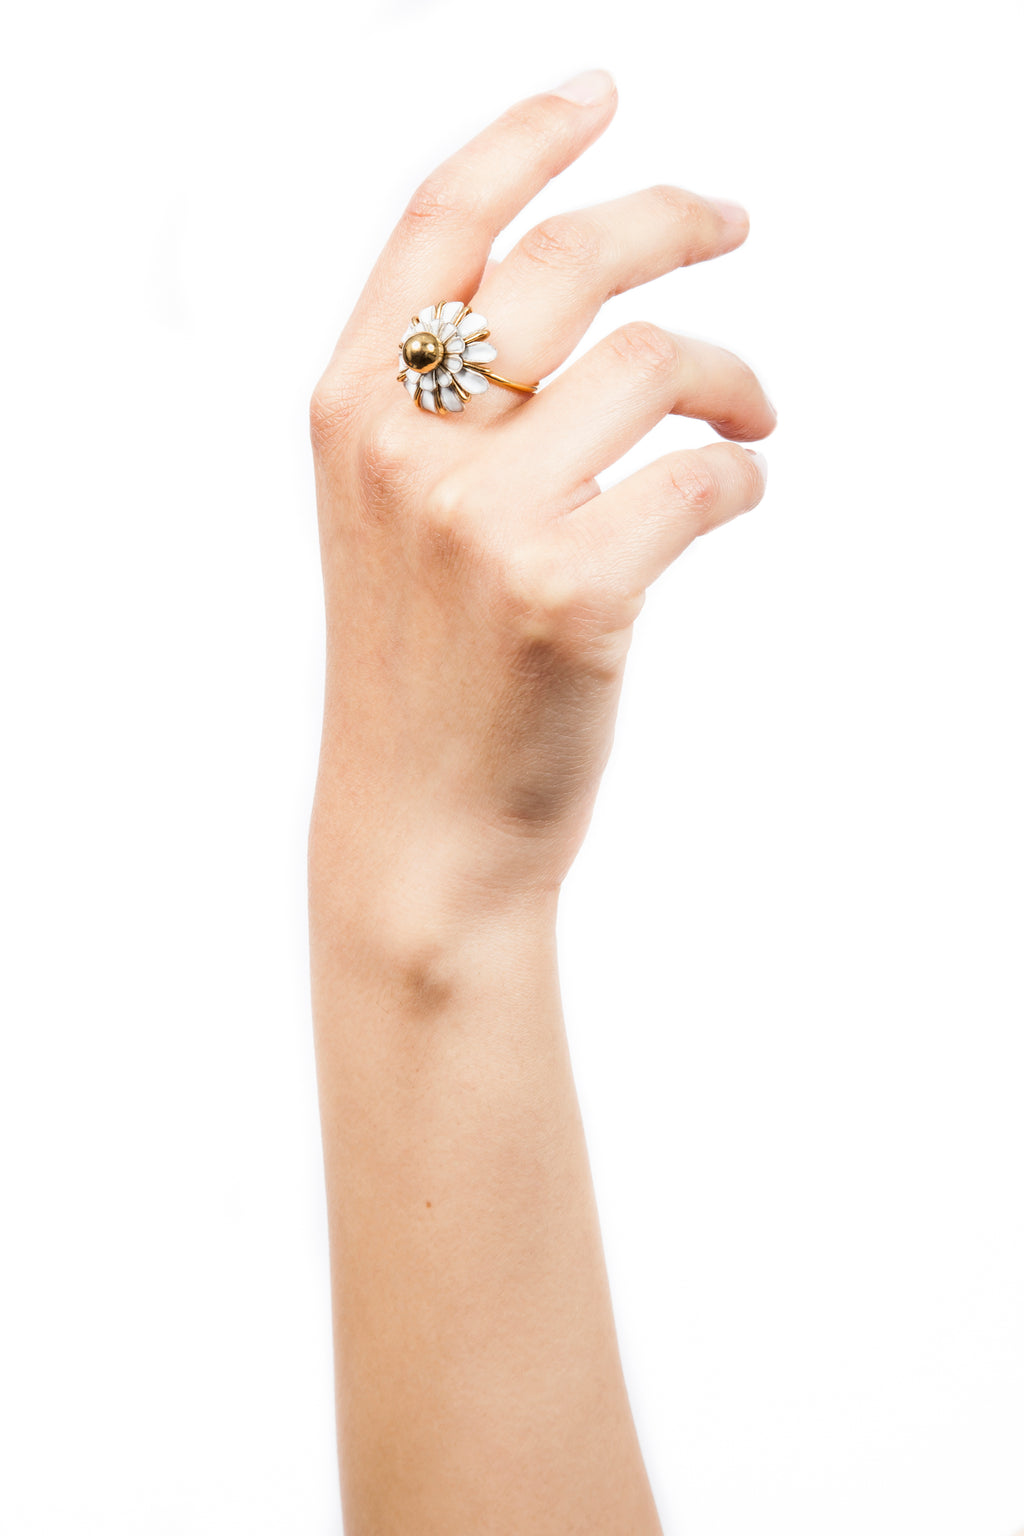 Iris Trends Daisy Enamel Ring by Beatriz Palacios Spain